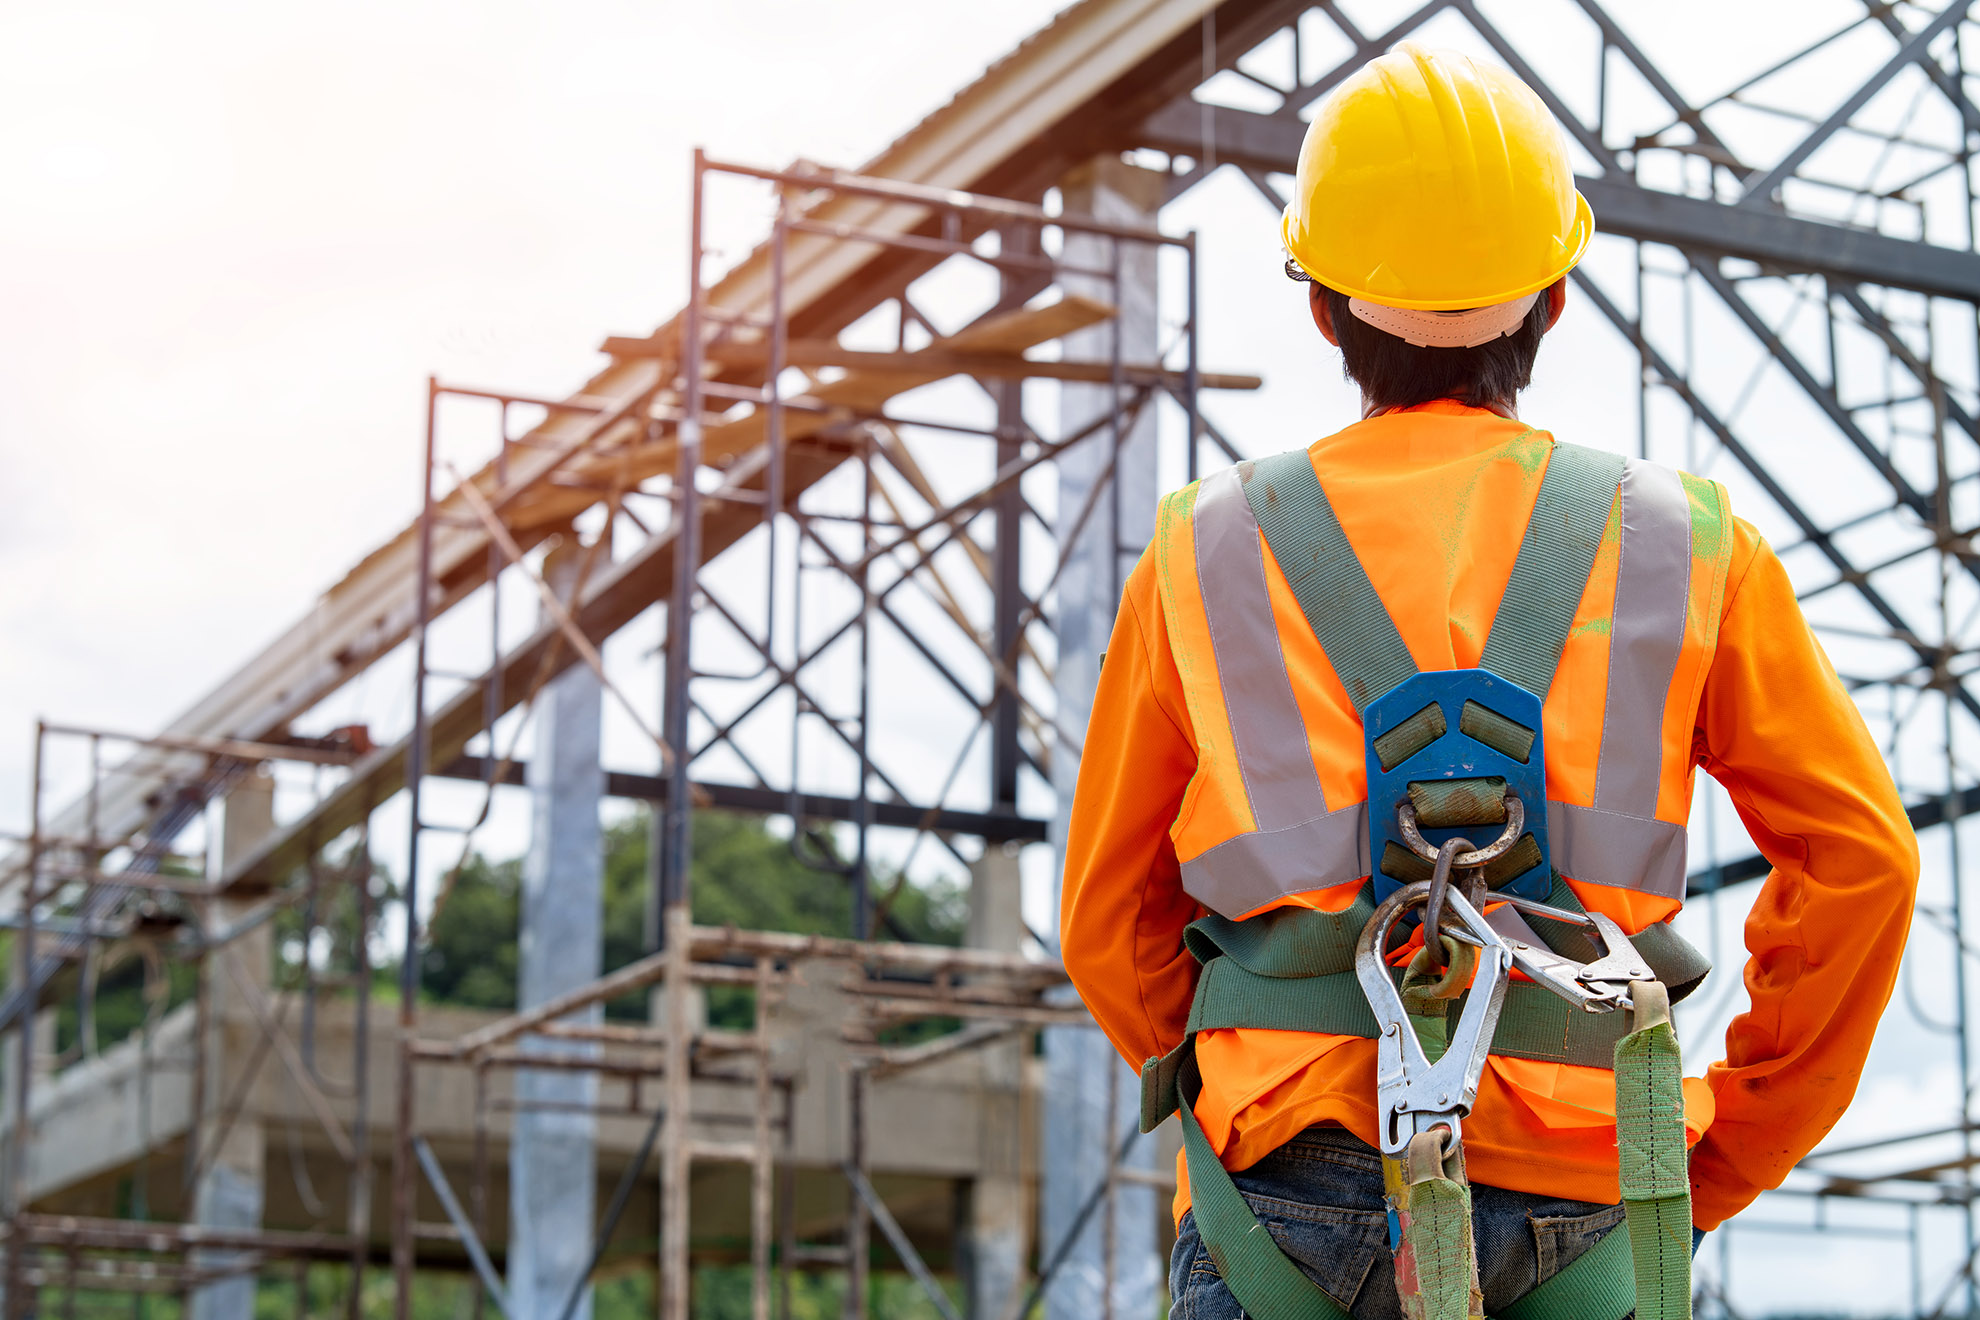 construction-worker-wearing-safety-harness-safety-line-working-high-place-practices-occupational-safety-health-can-use-hazard-controls-interventions-mitigate-workplace-hazards